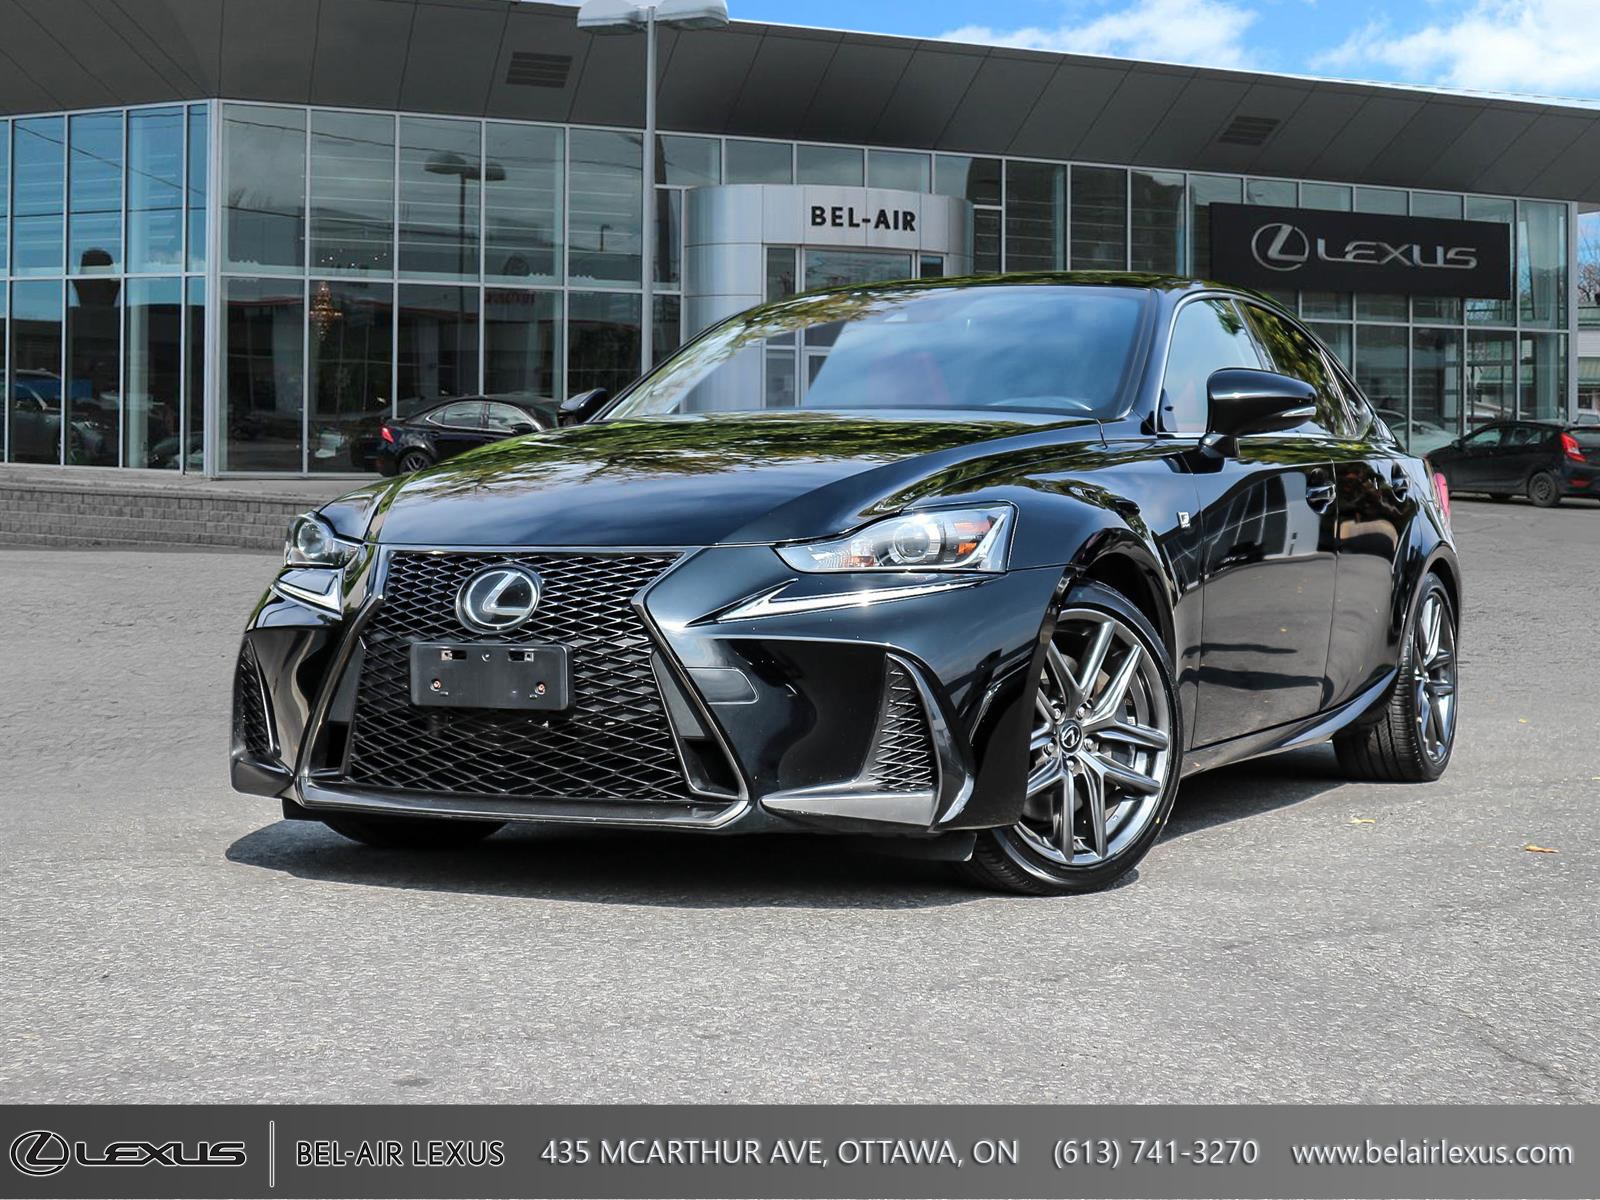 2017 Lexus IS 350 at Bel-Air Lexus